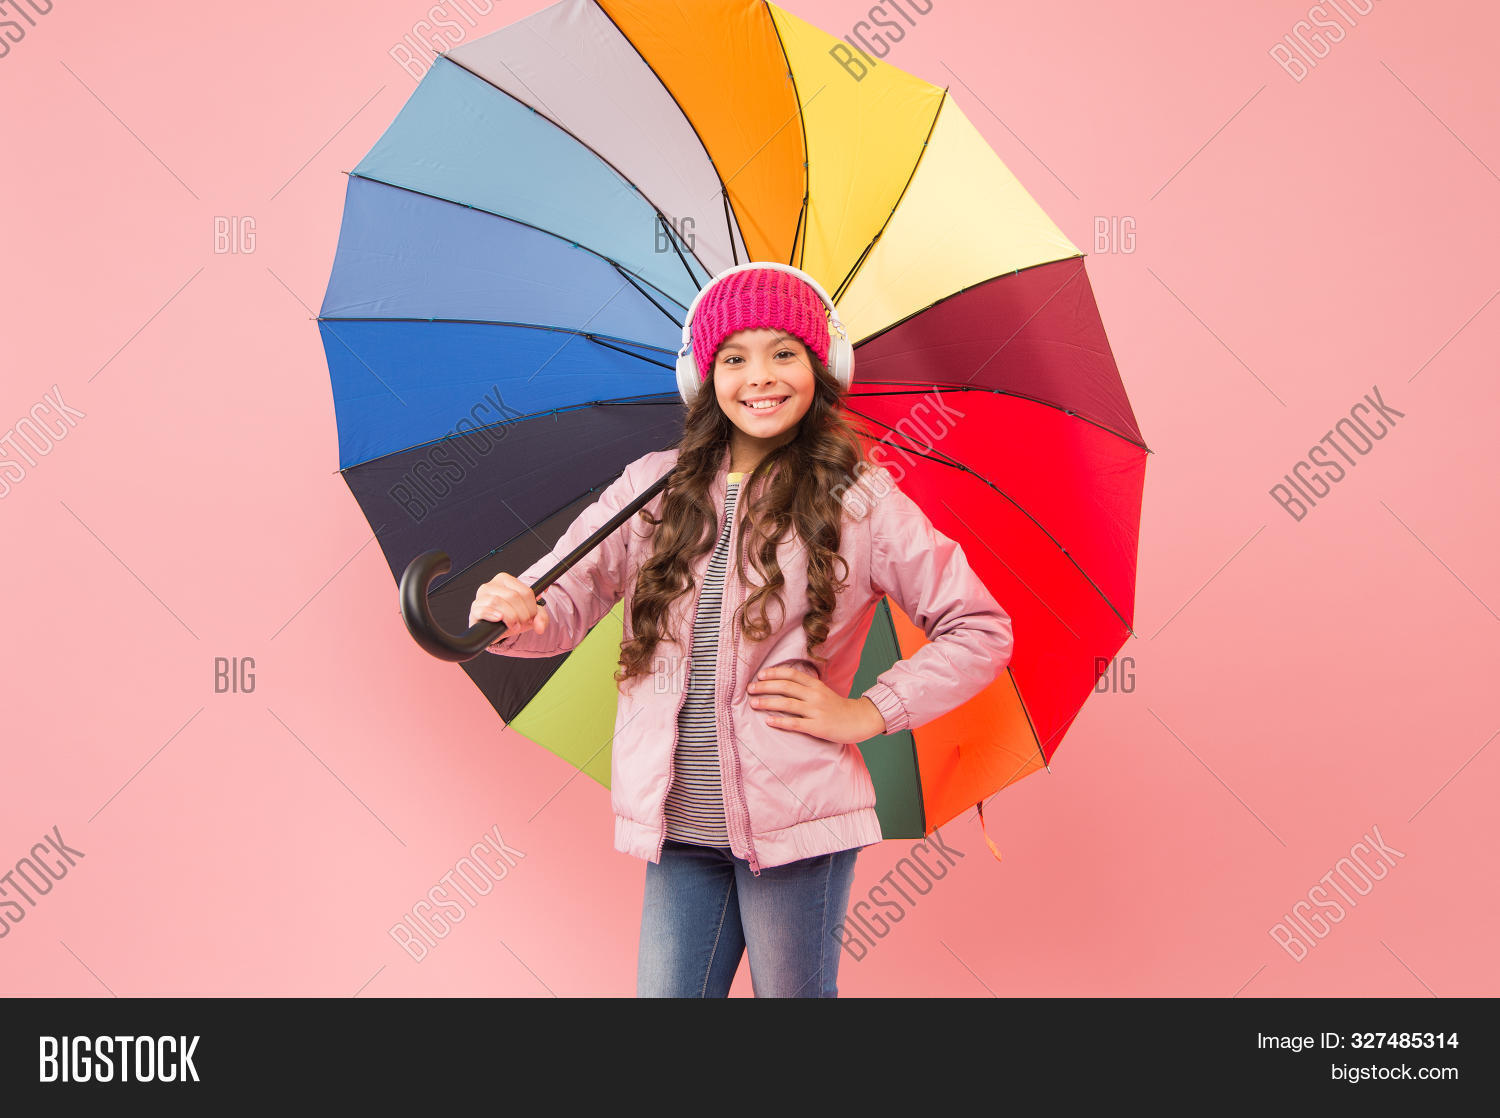 accessory,adorable,autumn,baby,background,brunette,casual,charm,child,childhood,coat,color,colorful,cute,enjoy,equipment,fall,fashion,fashionable,girl,glamor,glamorous,glamour,gorgeous,hair,headphones,kid,little,long,look,lovely,music,pink,rain,rainbow,raingear,rainy,school,schoolchild,season,small,style,stylish,trend,trendy,umbrella,weather